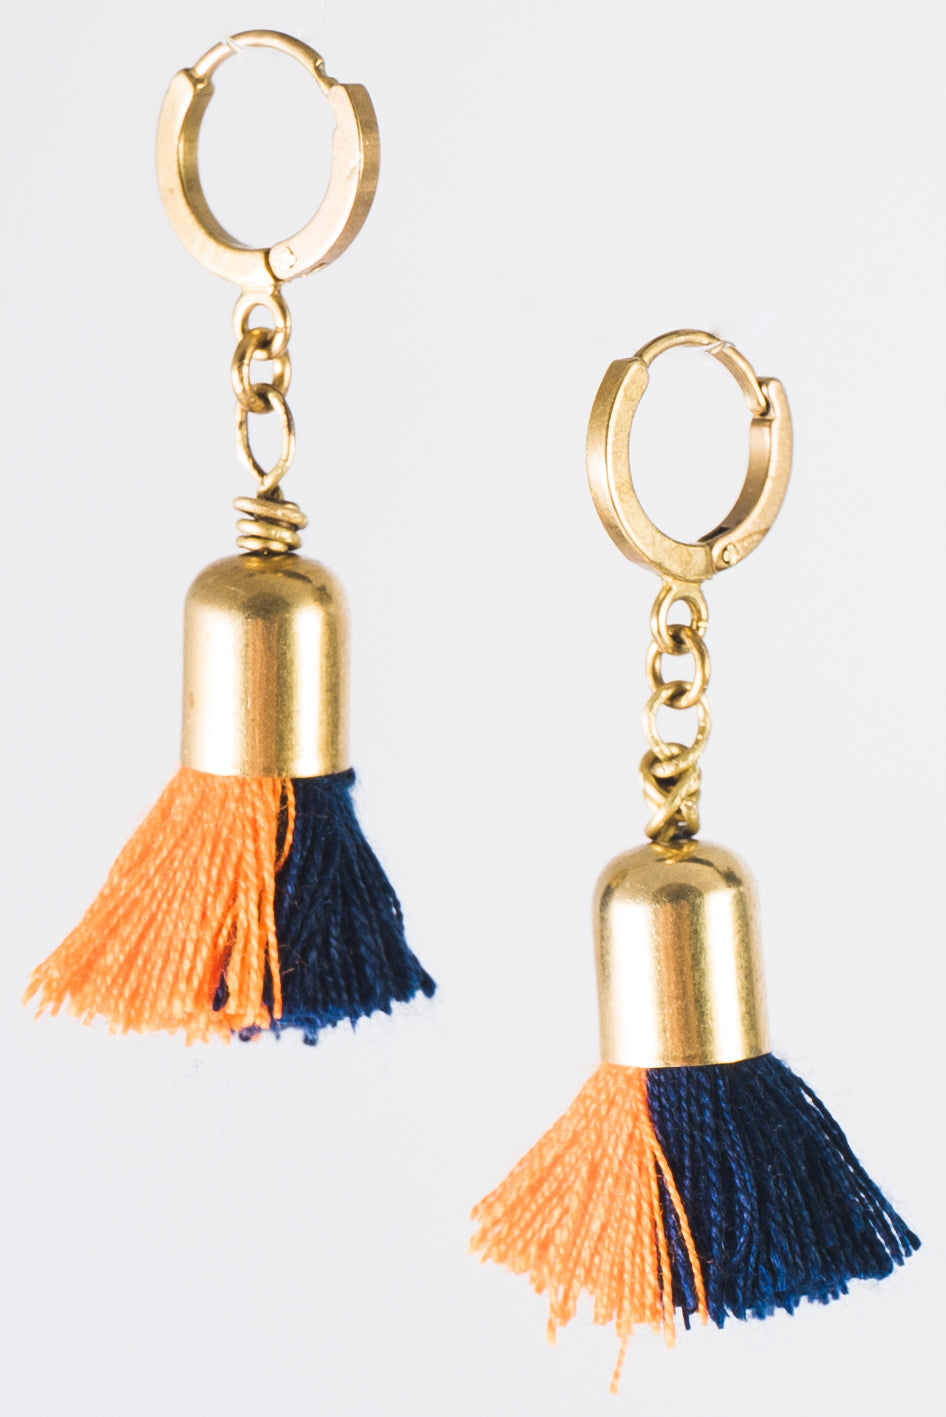 MISS TILLY Earrings